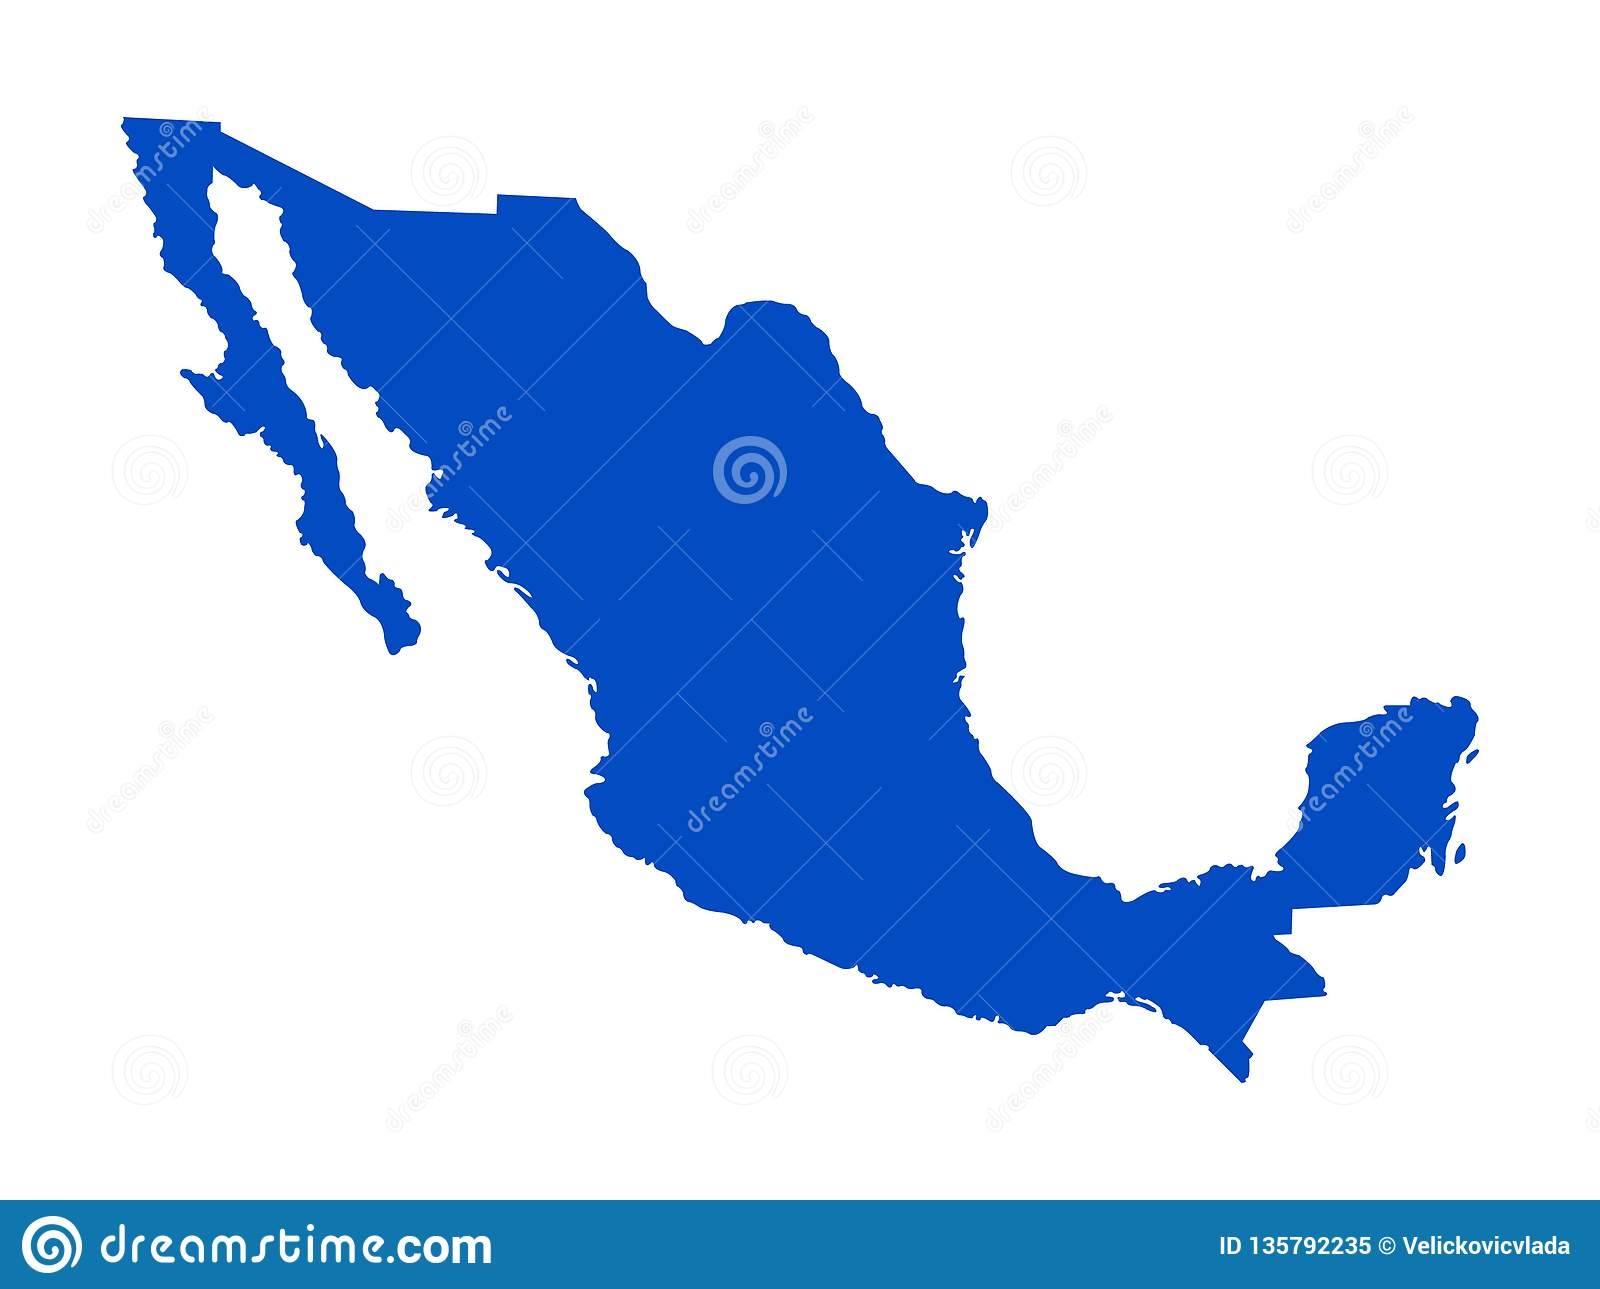 Mexico Map - United Mexican States Stock Vector - Illustration of ...